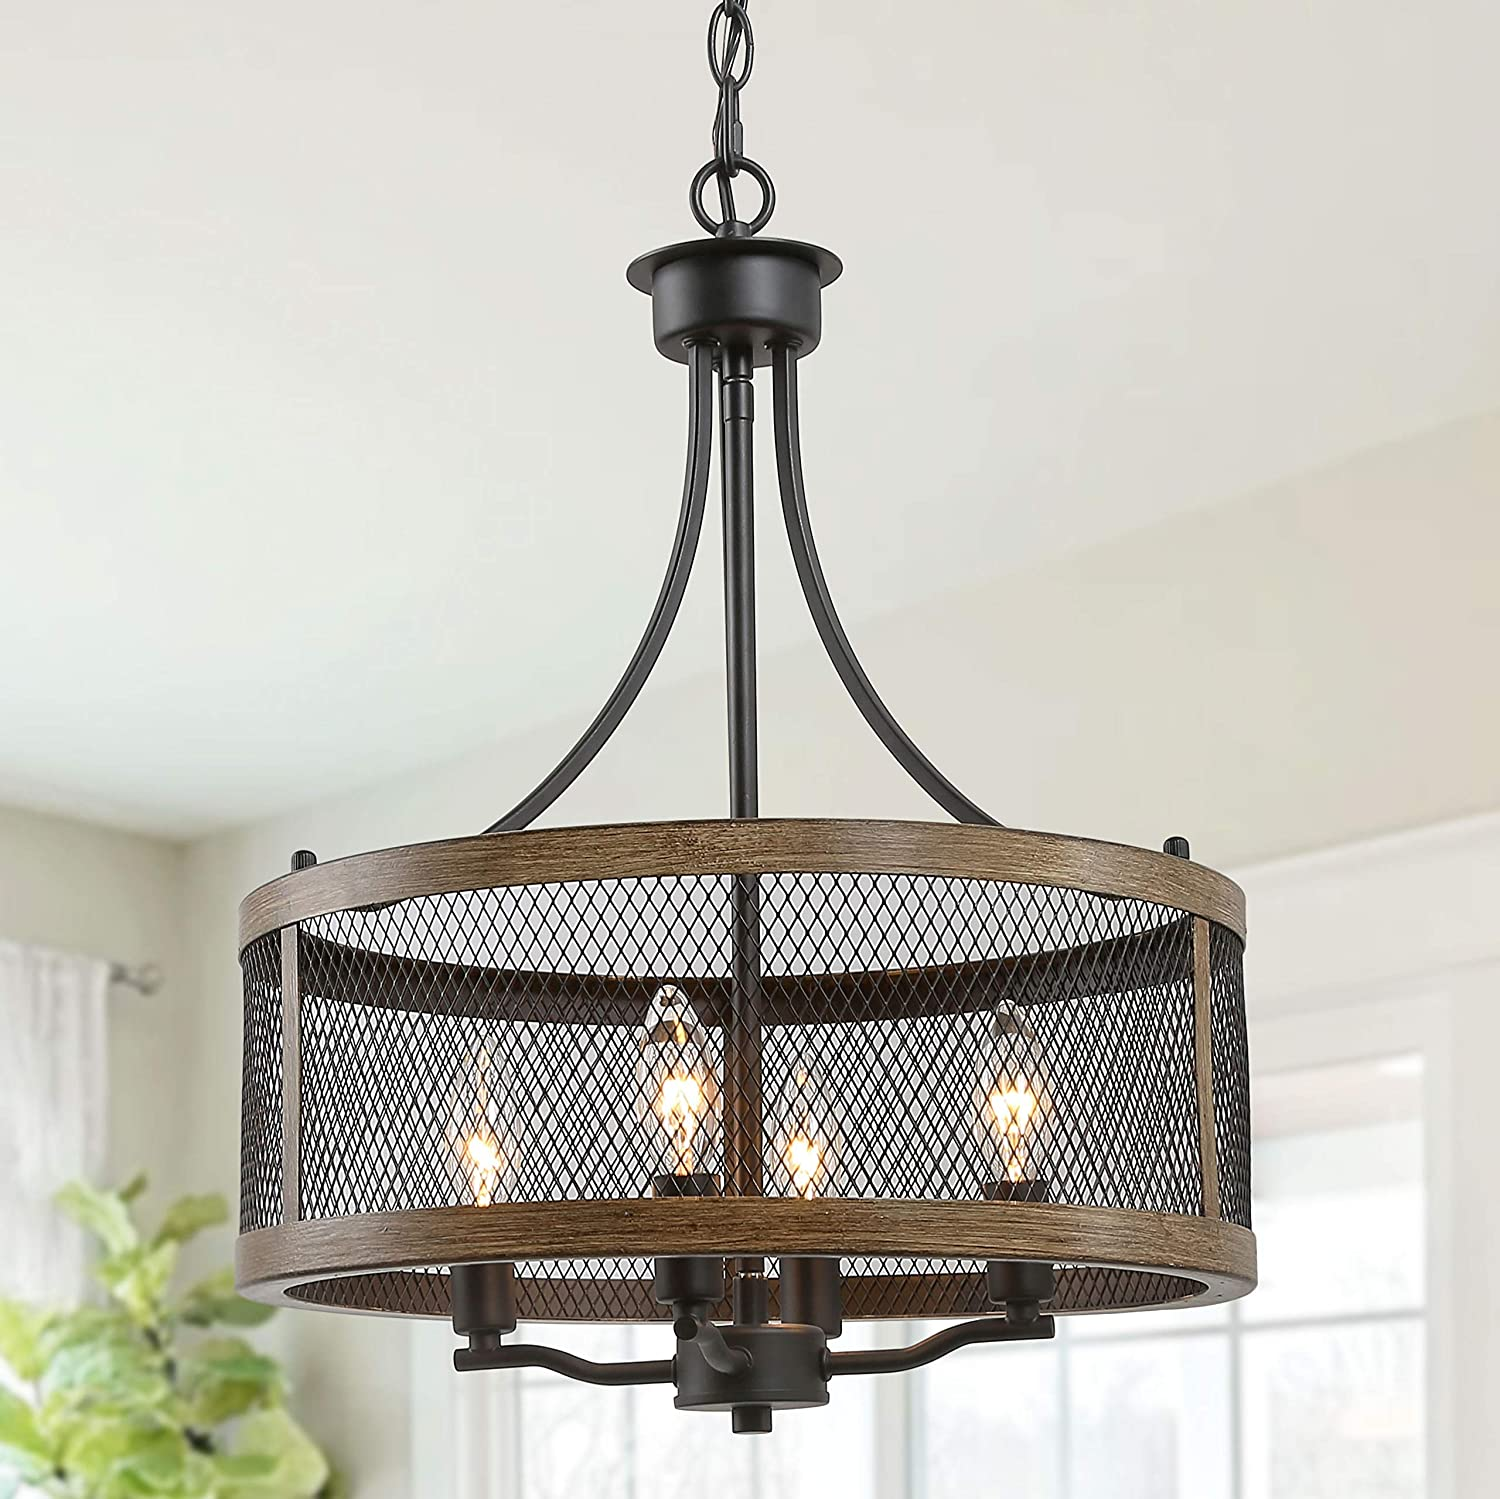 Laluz Farmhouse Chandelier Dining Room Light Fixture Drum Chandeliers 16 Width Oil Black Wood Painted Finish Amazon Com